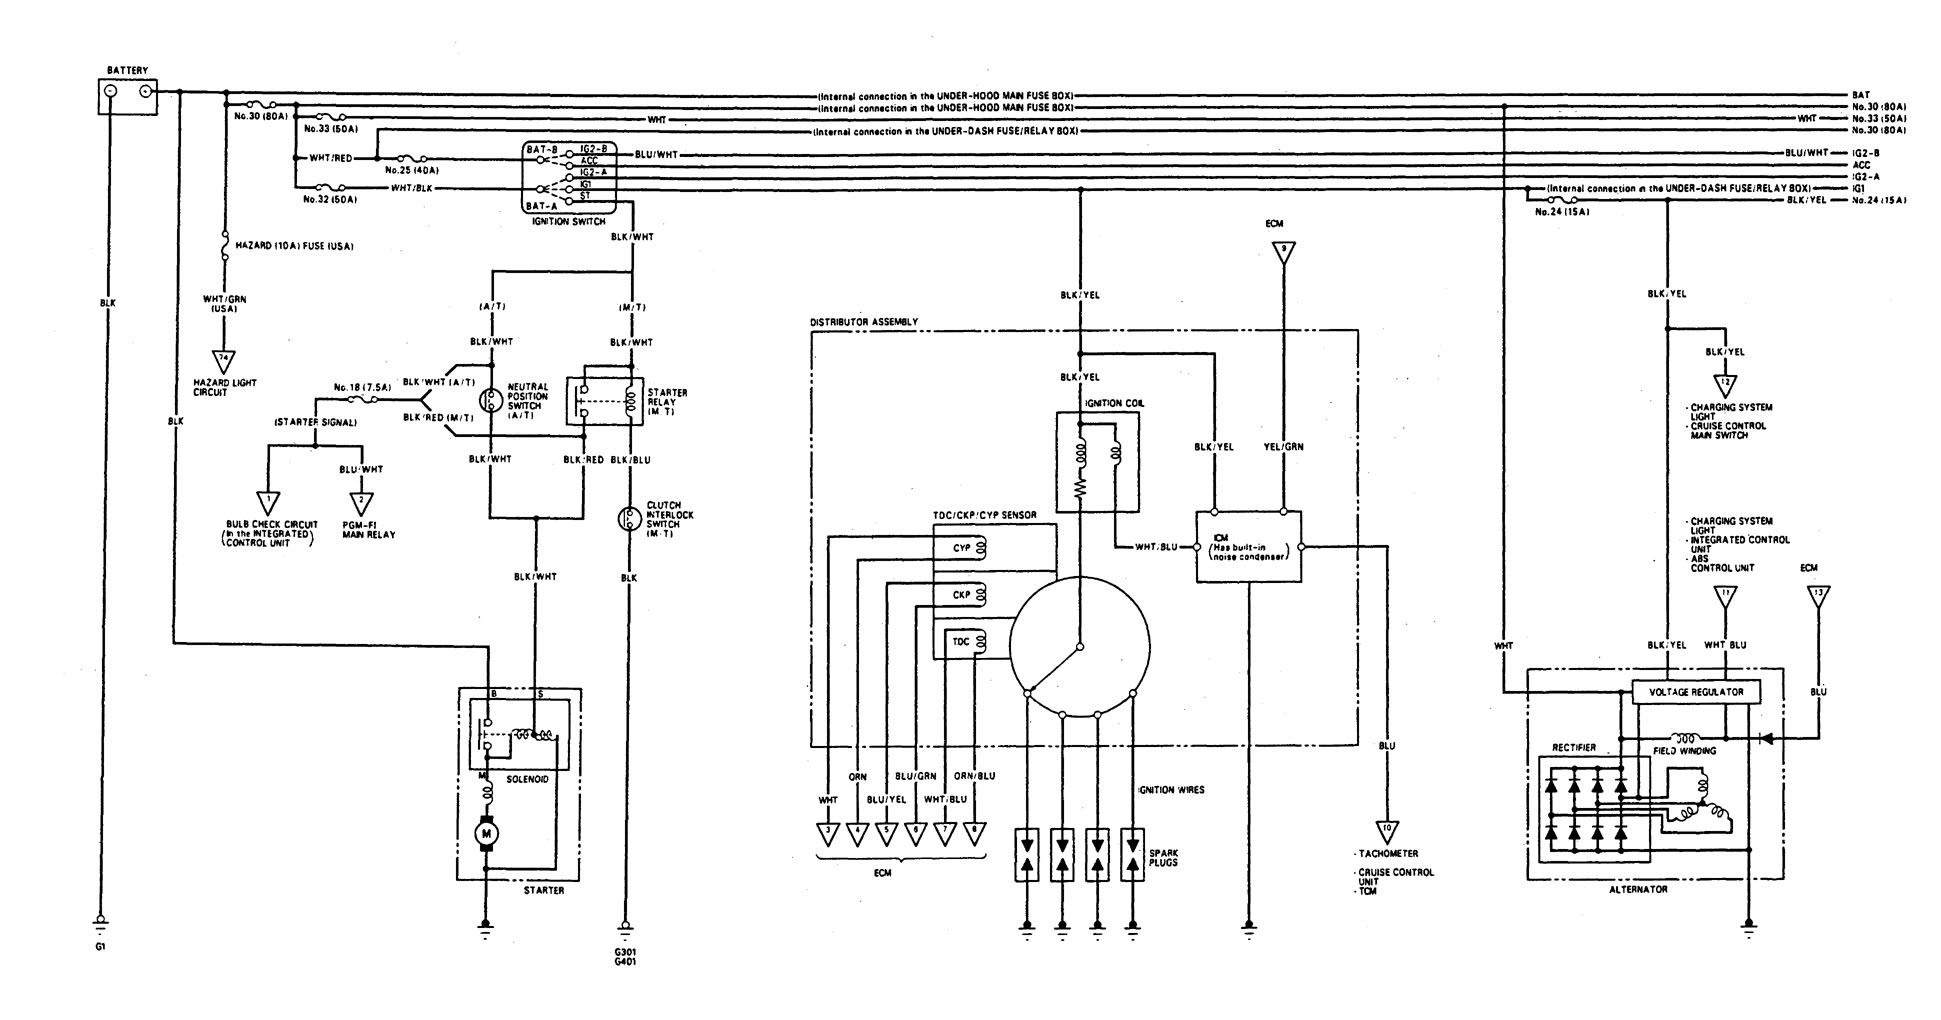 [DIAGRAM_38DE]  DIAGRAM] 92 Integra Wiring Diagrams FULL Version HD Quality Wiring Diagrams  - THROATDIAGRAM.SAINTMIHIEL-TOURISME.FR | Acura Alternator Wiring Diagram |  | Saintmihiel-tourisme.fr